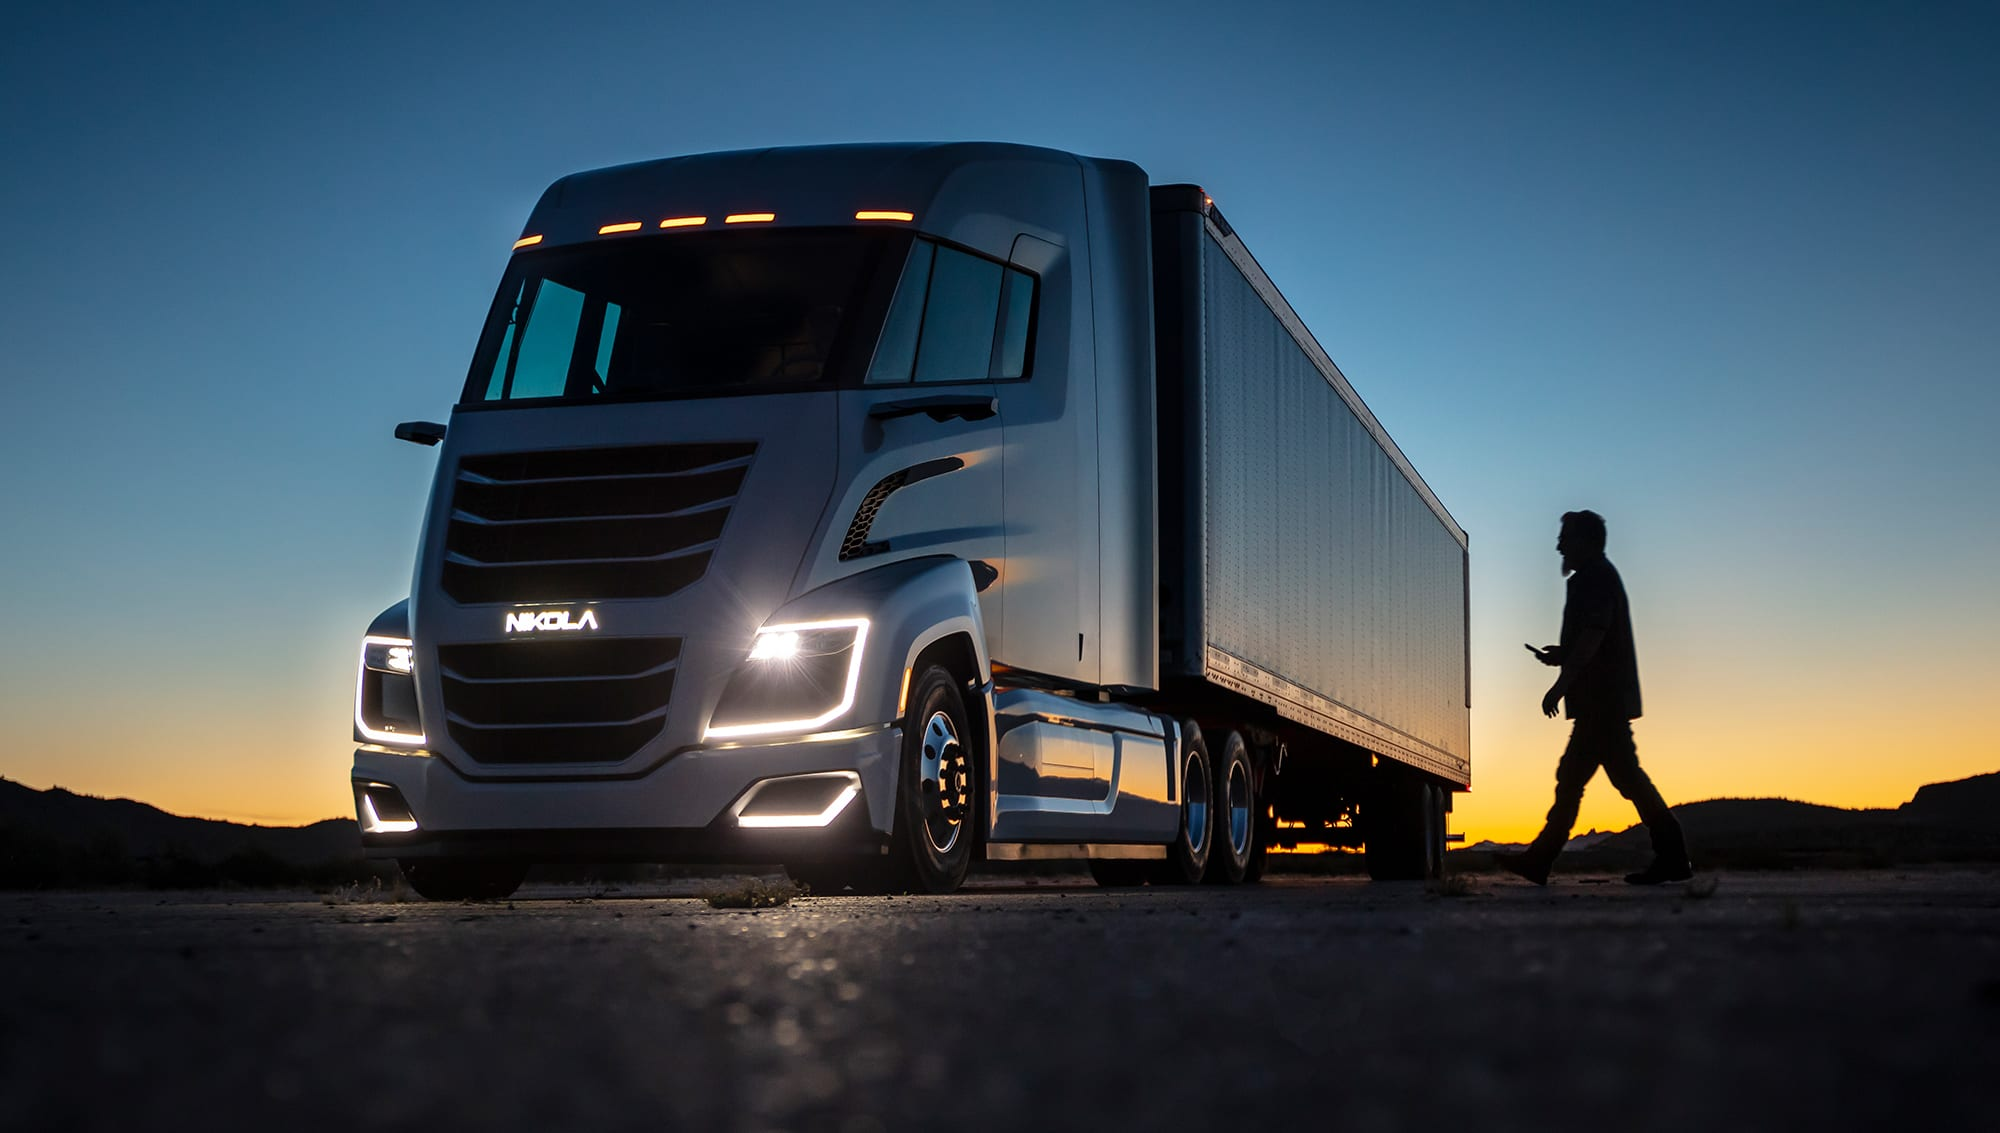 Nikola shares fall after CEO fails to reassure investors GM won't pull out of $2 billion deal